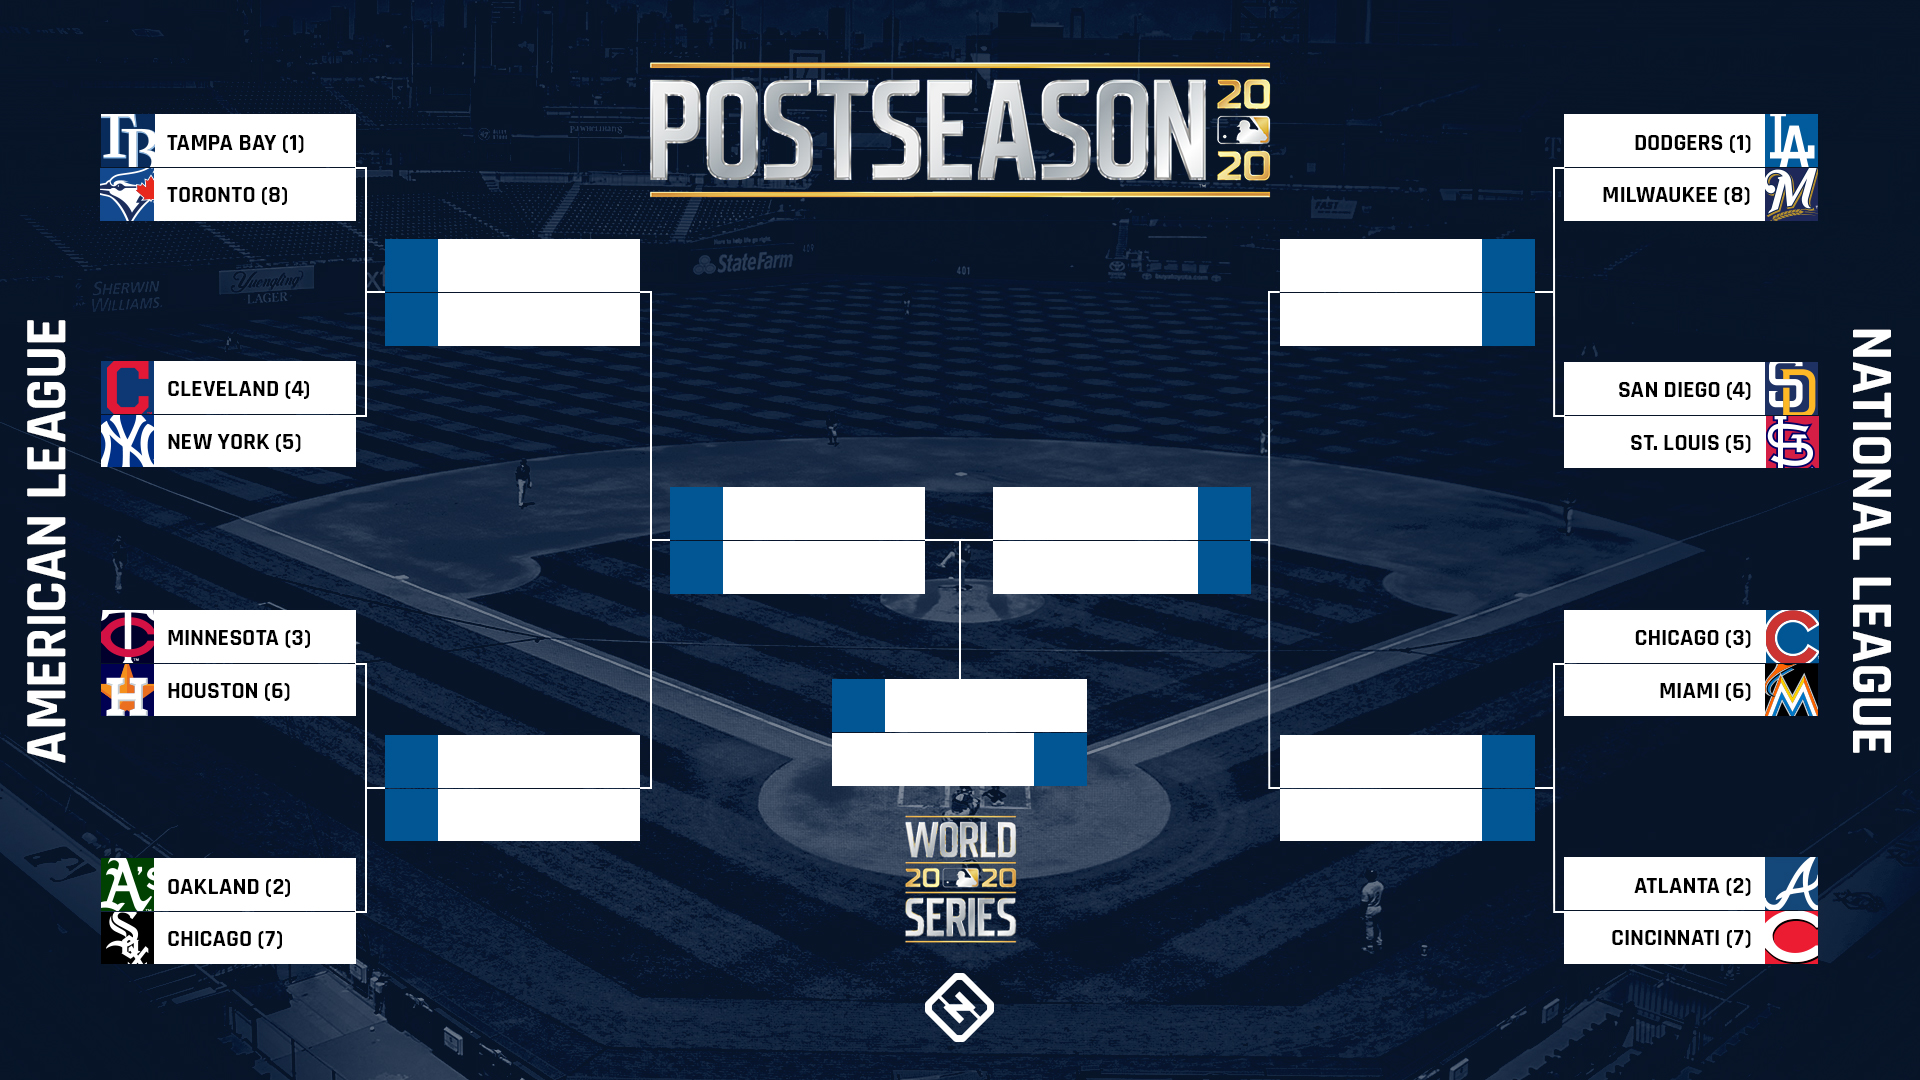 Mlb Playoff Schedule 2020 Full Bracket Dates Times Tv Channels For Every Series Go Travel Blogger